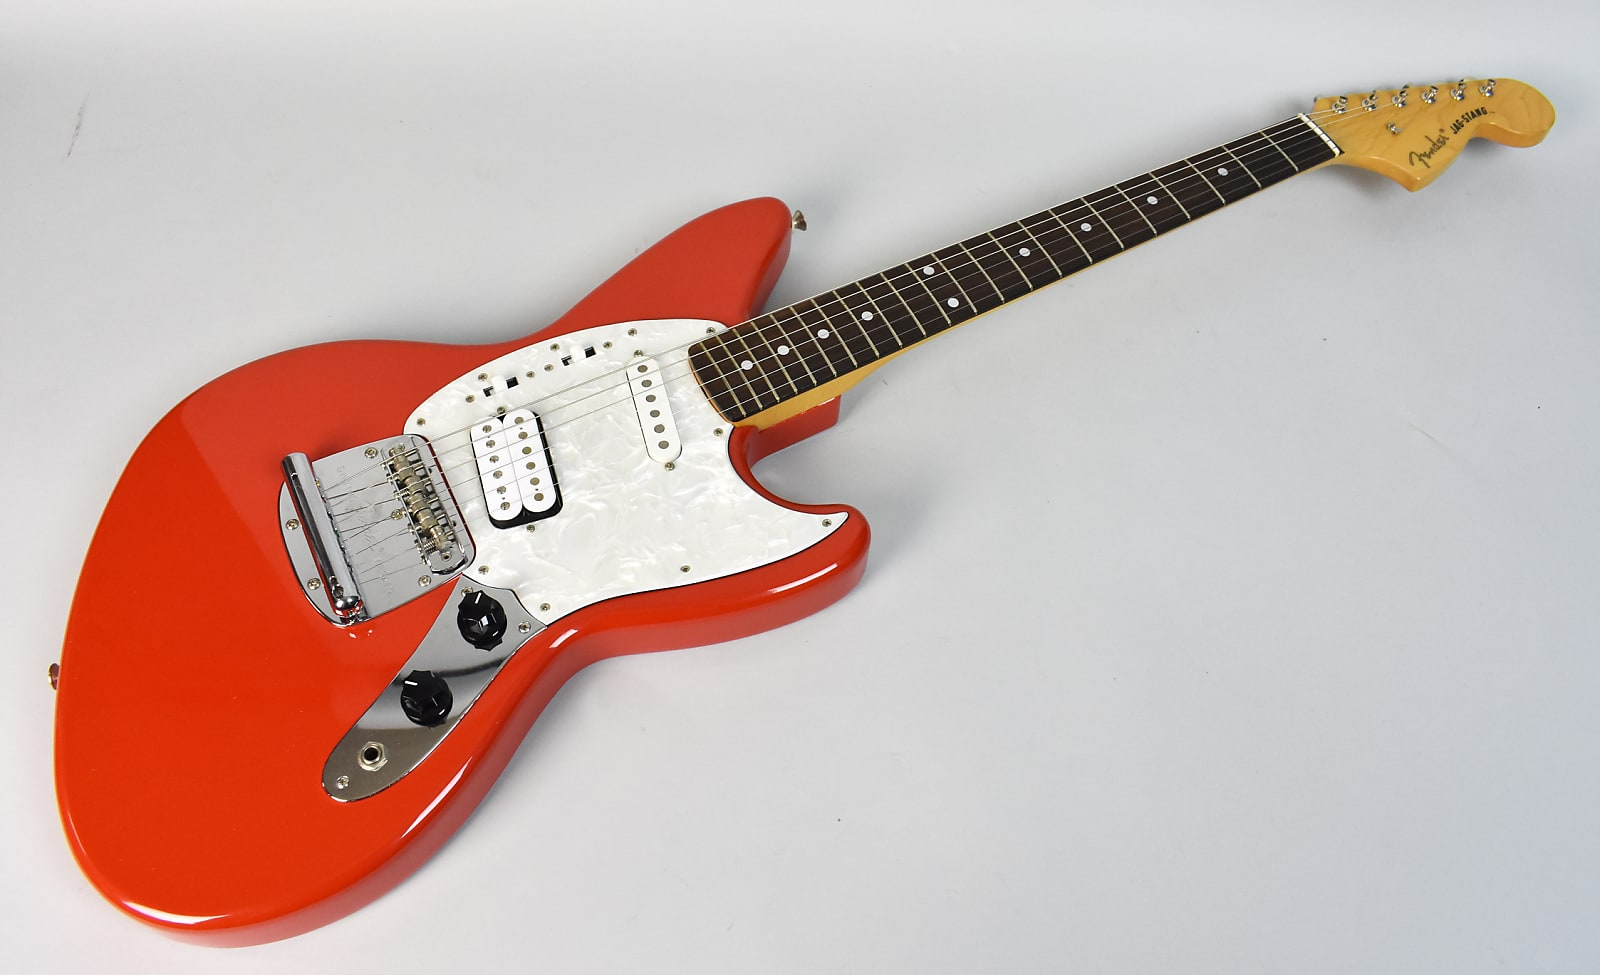 1996 Fender Jag-Stang Designed By Kurt Cobain Electric Guitar Fiesta Red Made In Japan!